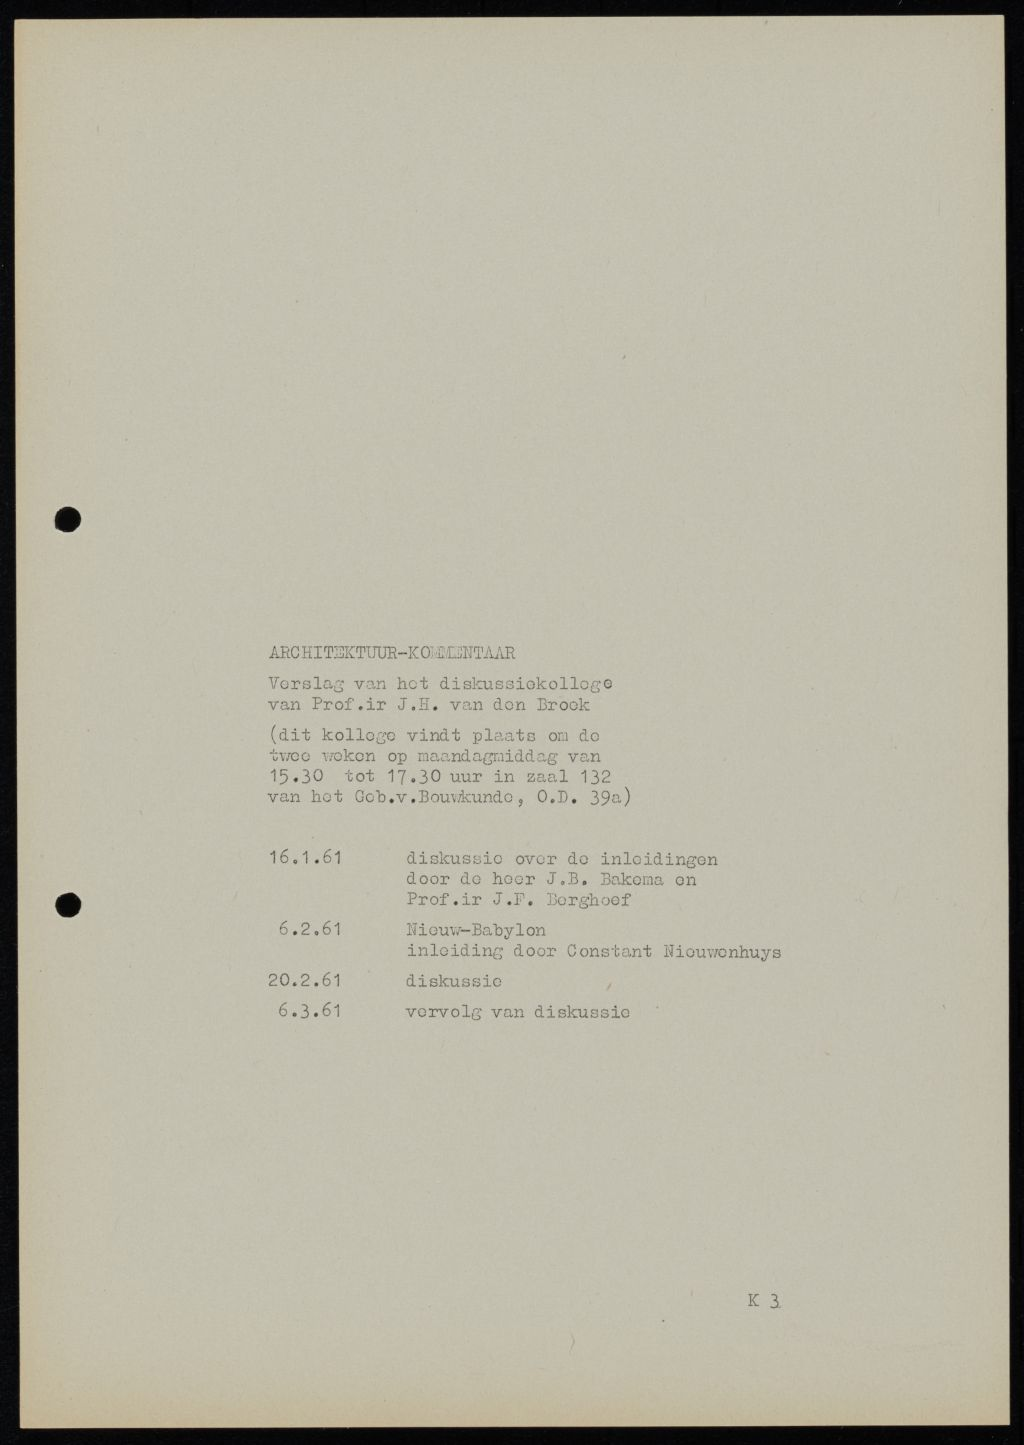 Lecture Constant Nieuwenhuys, 1961. With notes in the margins by J.H. van den Broek, who had organized the lecture.